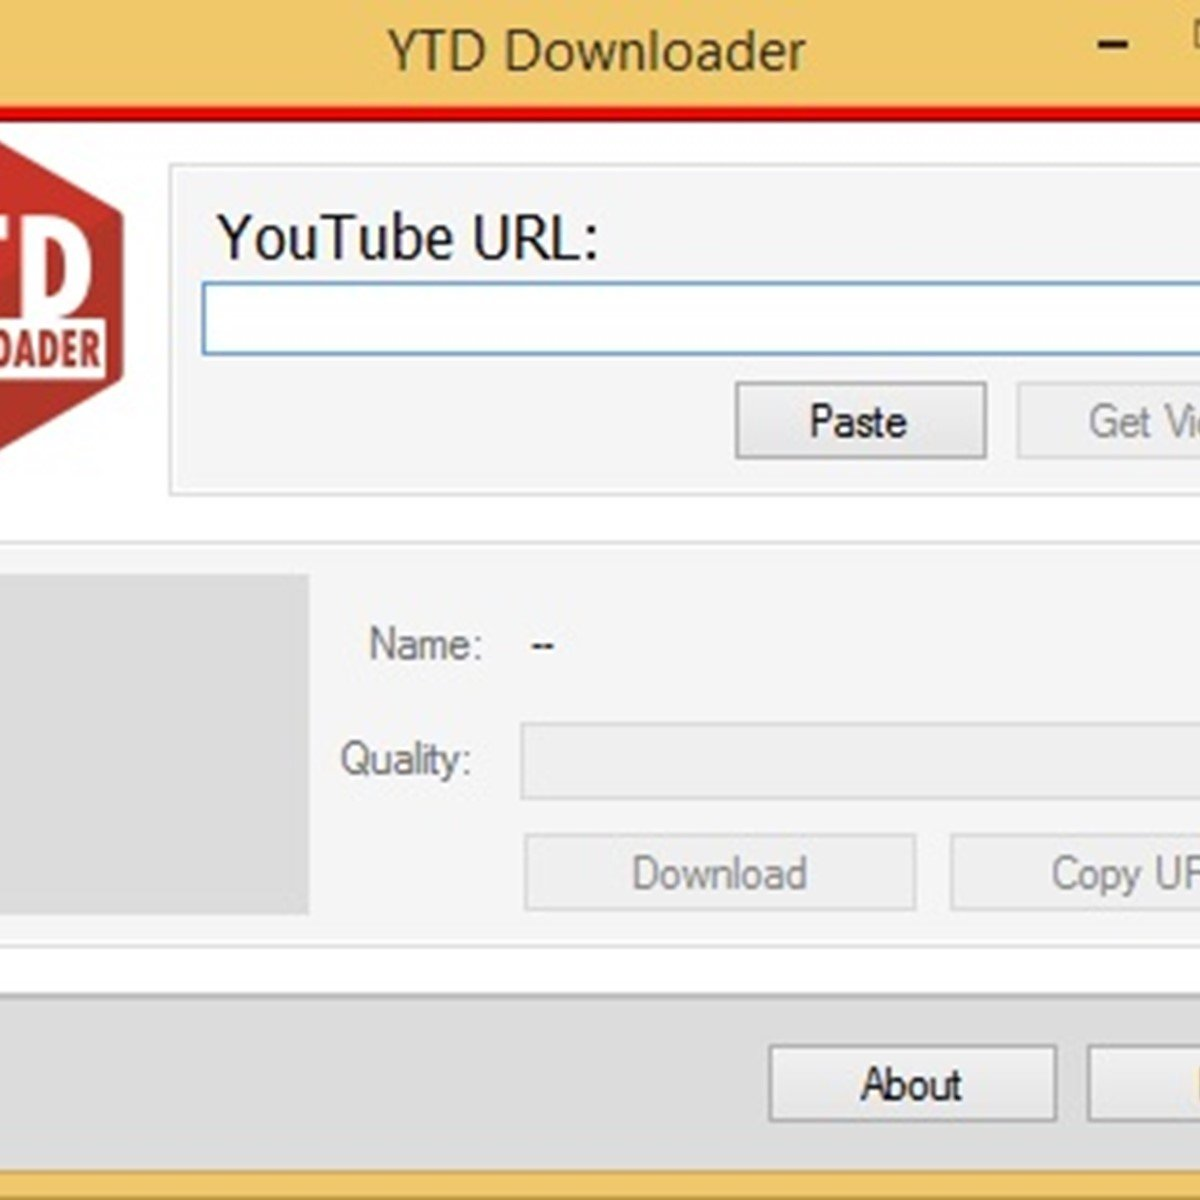 youtube downloader ytd